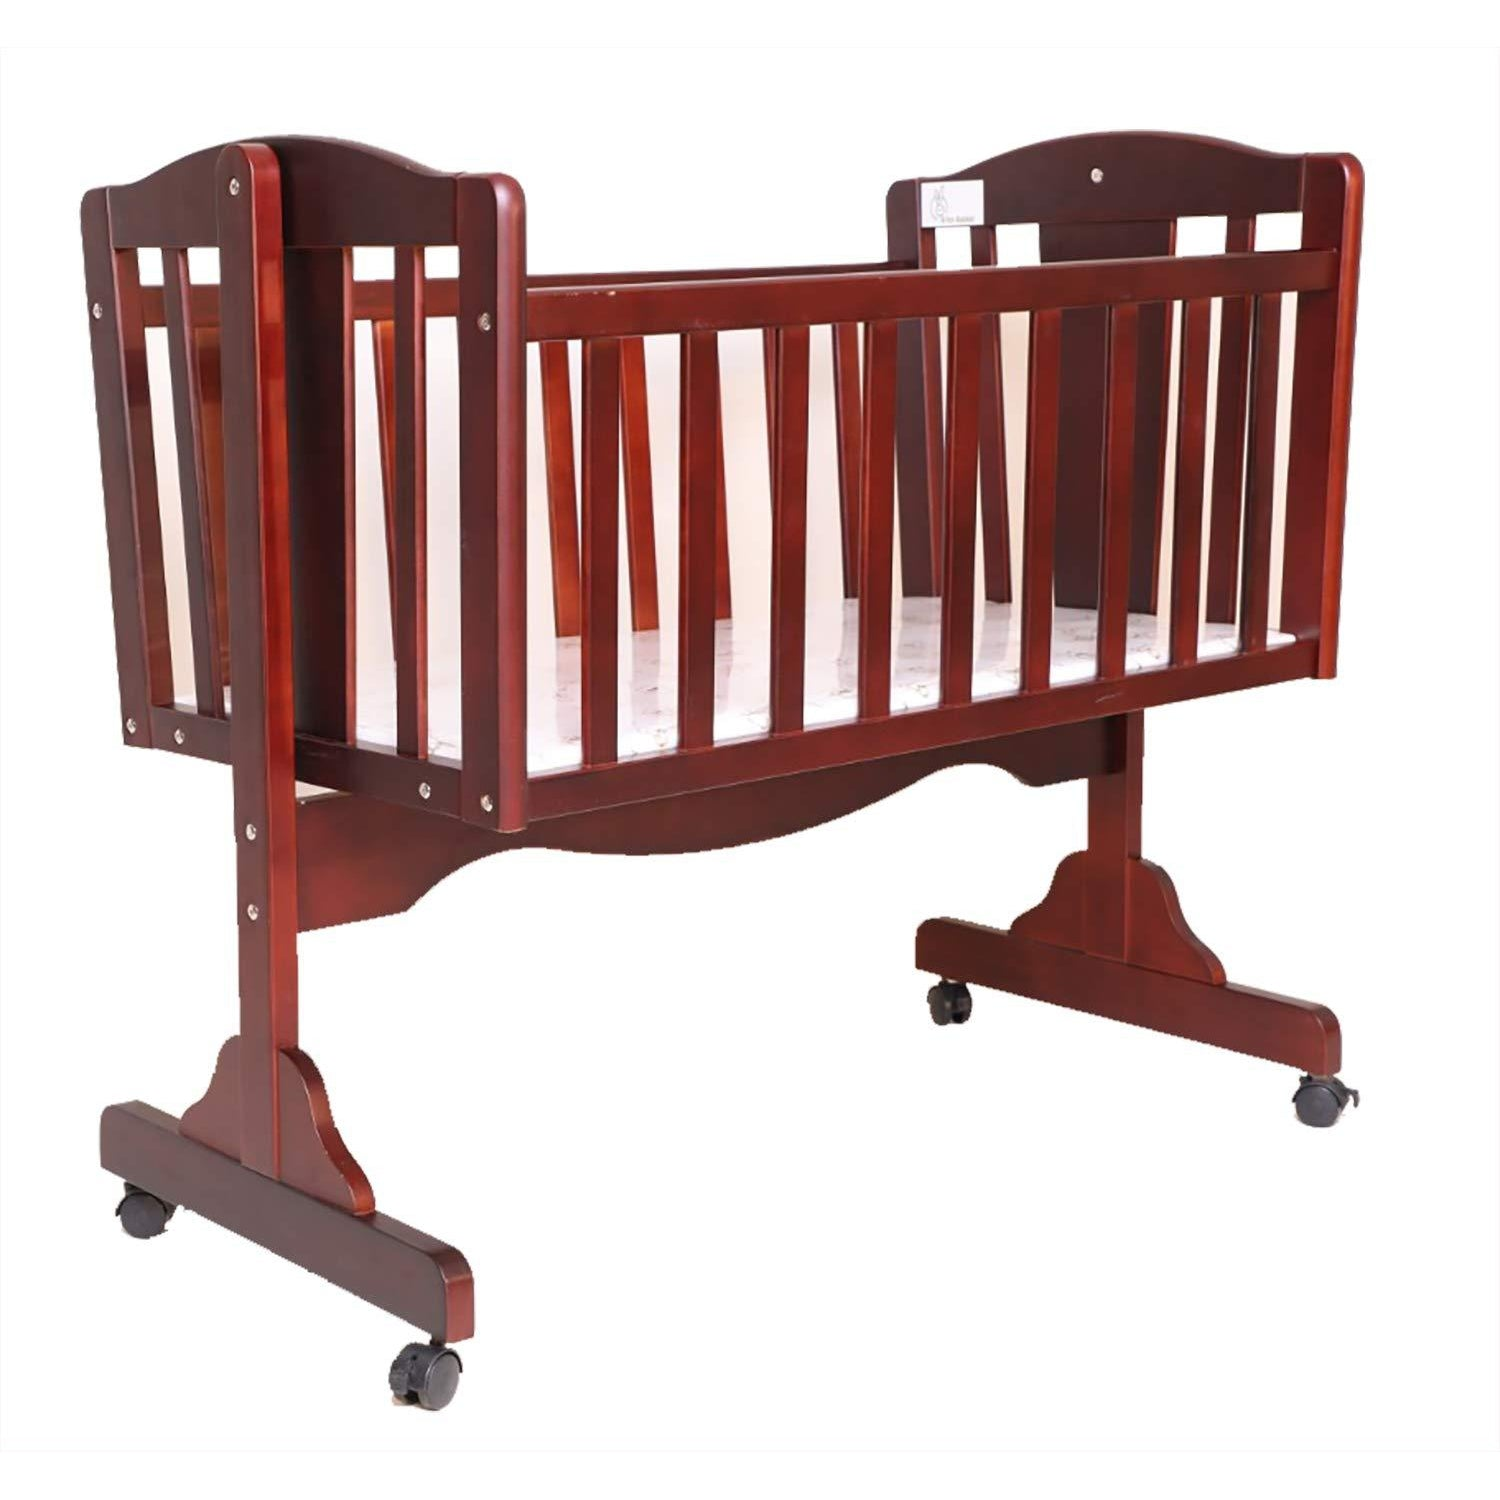 R for Rabbit Dream Time Wooden Cradle for New Born Babies